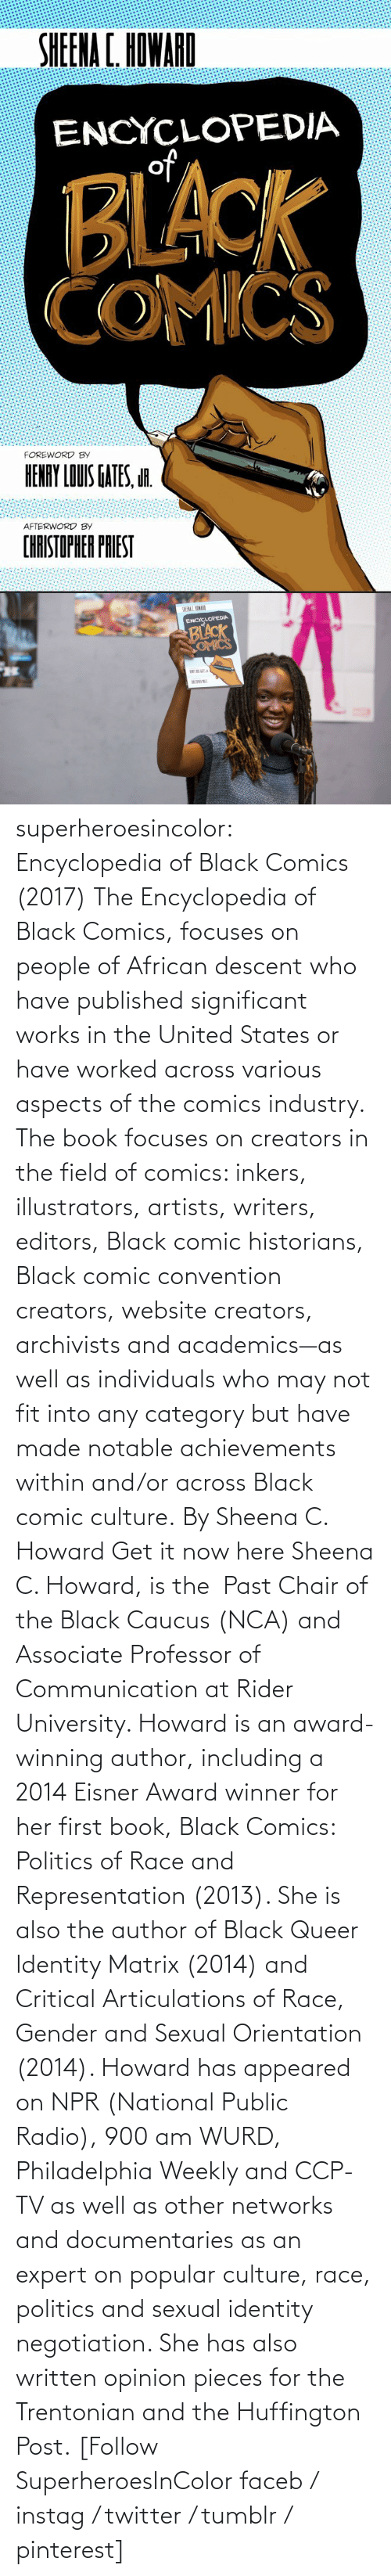 follow: superheroesincolor: Encyclopedia of Black Comics (2017) The Encyclopedia of Black Comics, focuses on people of African descent who have published significant works in the United States or have worked across various aspects of the comics industry.  The book focuses on creators in the field of comics: inkers, illustrators, artists, writers, editors, Black comic historians, Black comic convention creators, website creators, archivists and academics—as well as individuals who may not fit into any category but have made notable achievements within and/or across Black comic culture. By Sheena C. Howard Get it now here  Sheena C. Howard, is the  Past Chair of the Black Caucus (NCA) and Associate Professor of Communication at Rider University. Howard is an award-winning author, including a 2014 Eisner Award winner for her first book, Black Comics: Politics of Race and Representation (2013). She is also the author of Black Queer Identity Matrix (2014) and Critical Articulations of Race, Gender and Sexual Orientation (2014). Howard has appeared on NPR (National Public Radio), 900 am WURD, Philadelphia Weekly and CCP-TV as well as other networks and documentaries as an expert on popular culture, race, politics and sexual identity negotiation. She has also written opinion pieces for the Trentonian and the Huffington Post.   [Follow SuperheroesInColor faceb / instag / twitter / tumblr / pinterest]